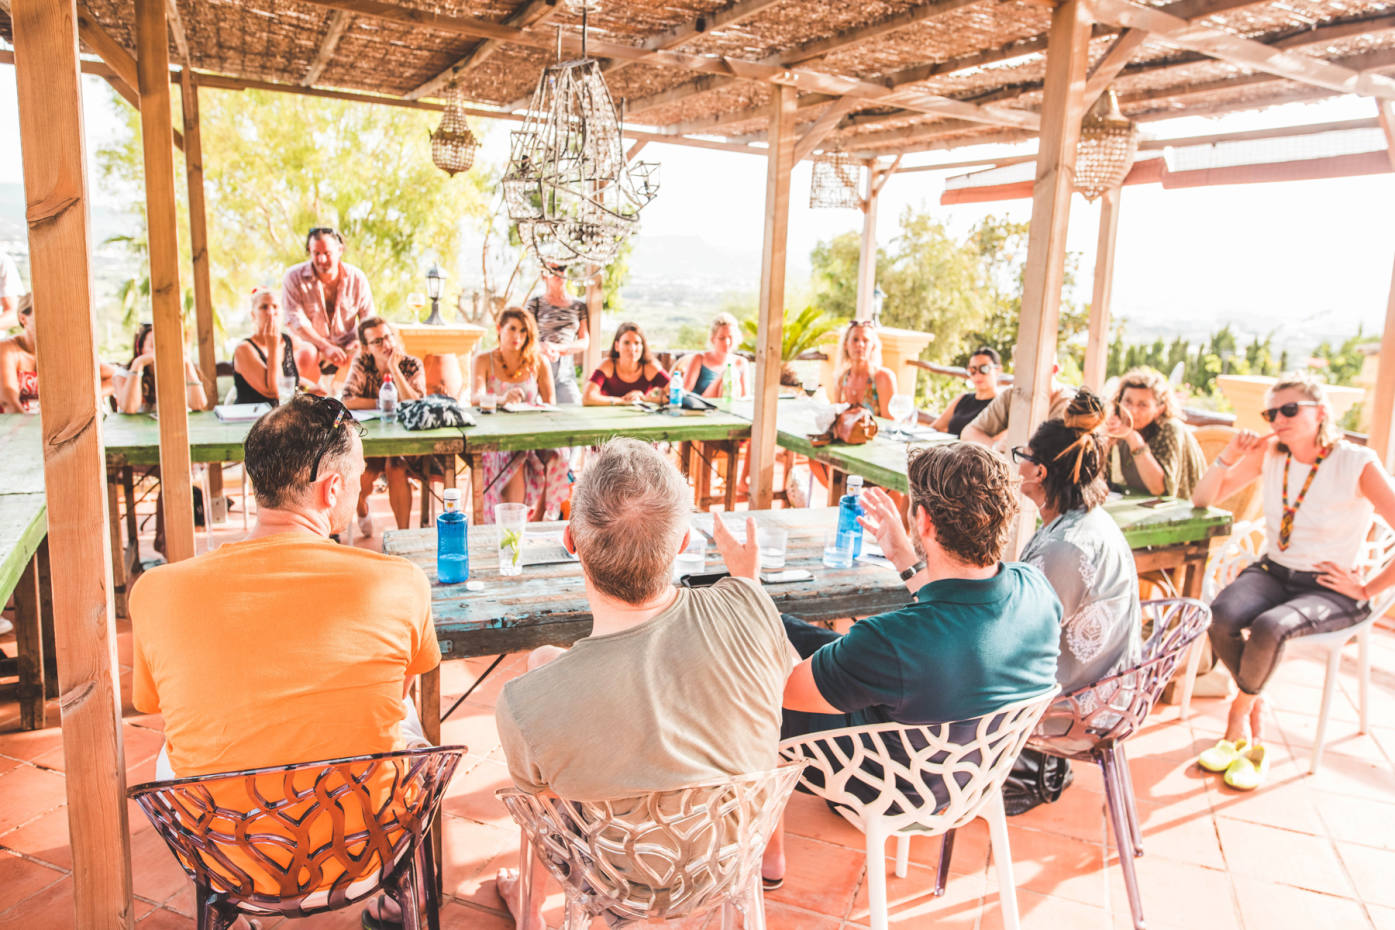 A workshop at last year's Pikes Literary Festival in Ibiza